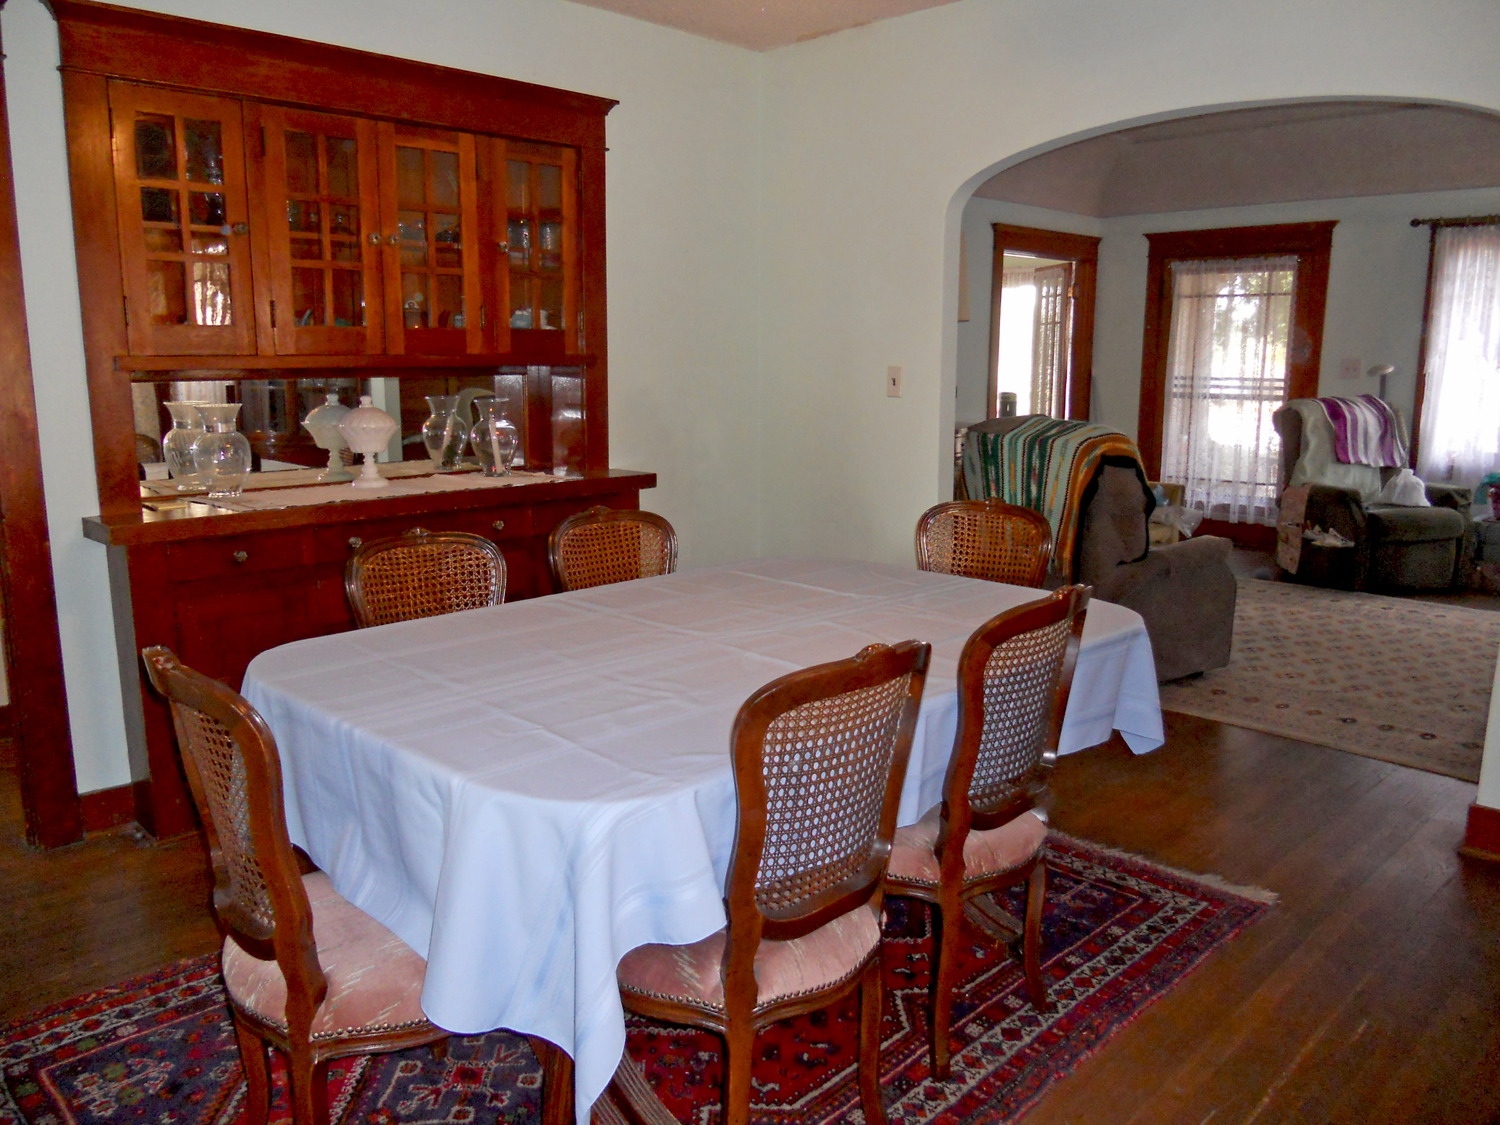 Formal dining room with original built-in hutch (never painted) and original hardwood floors.